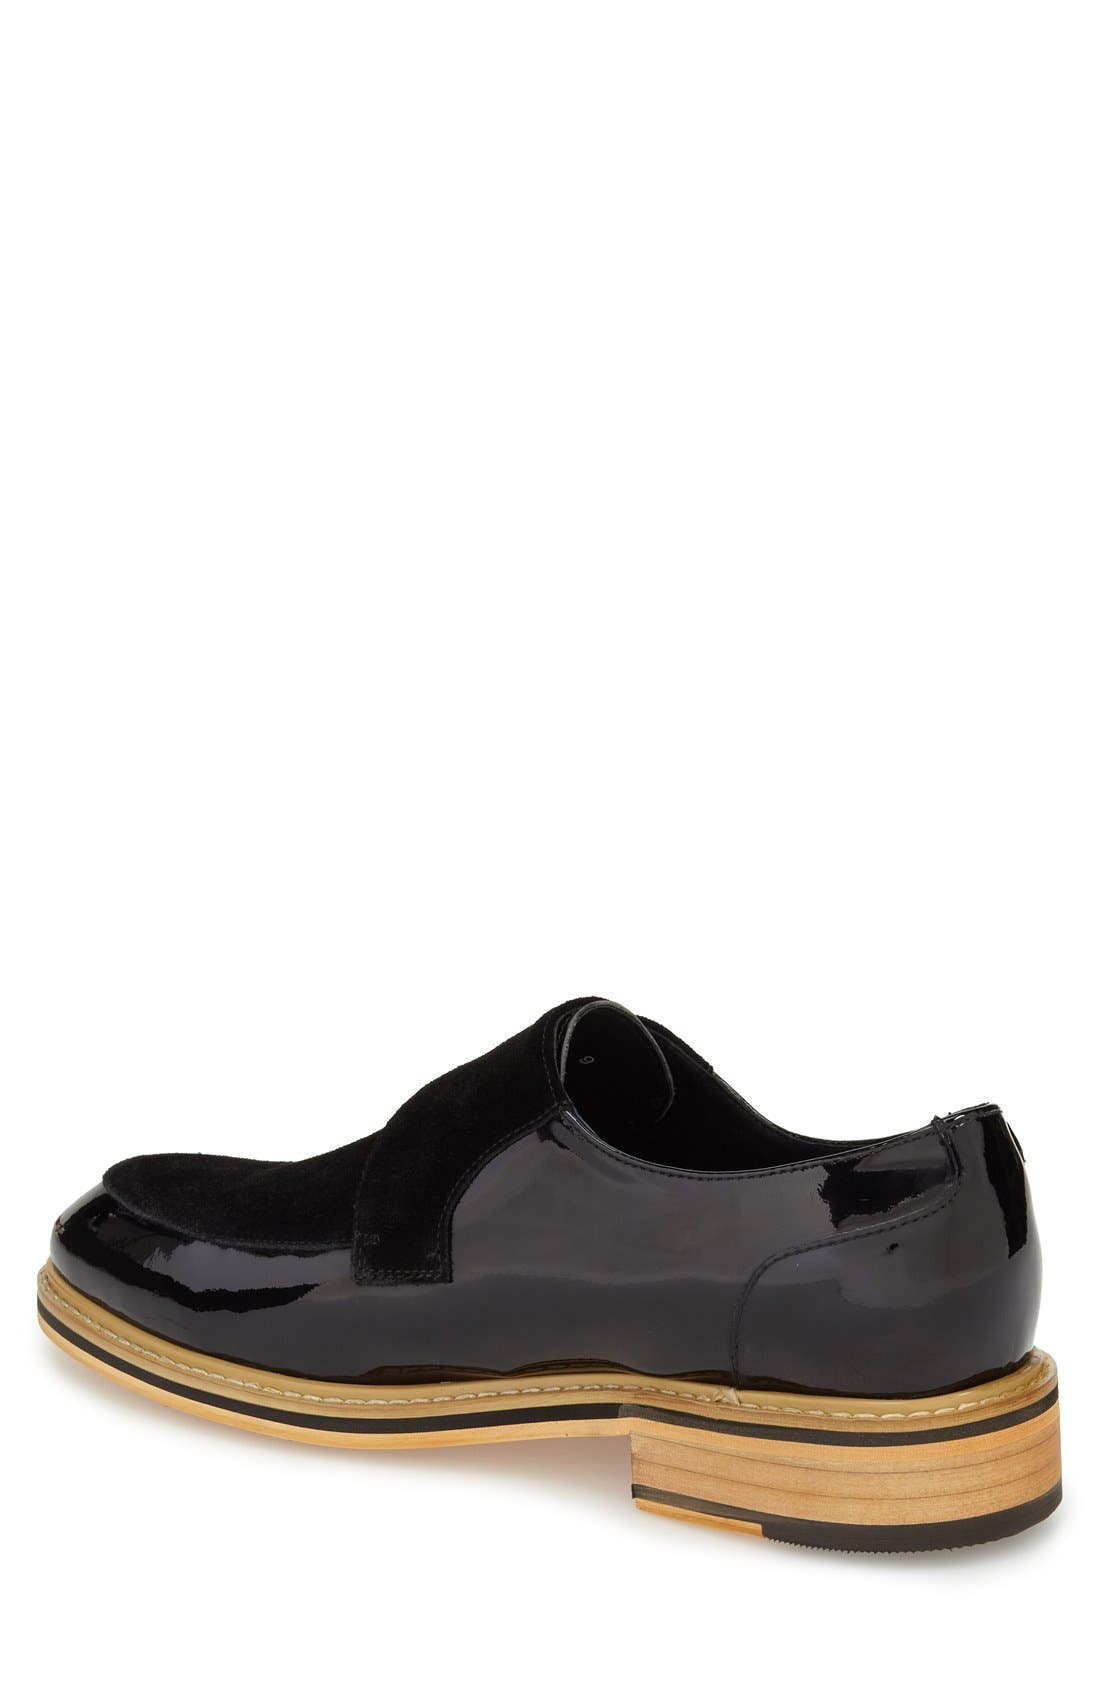 'Courbet' Monk Strap Shoe,                             Alternate thumbnail 2, color,                             Black